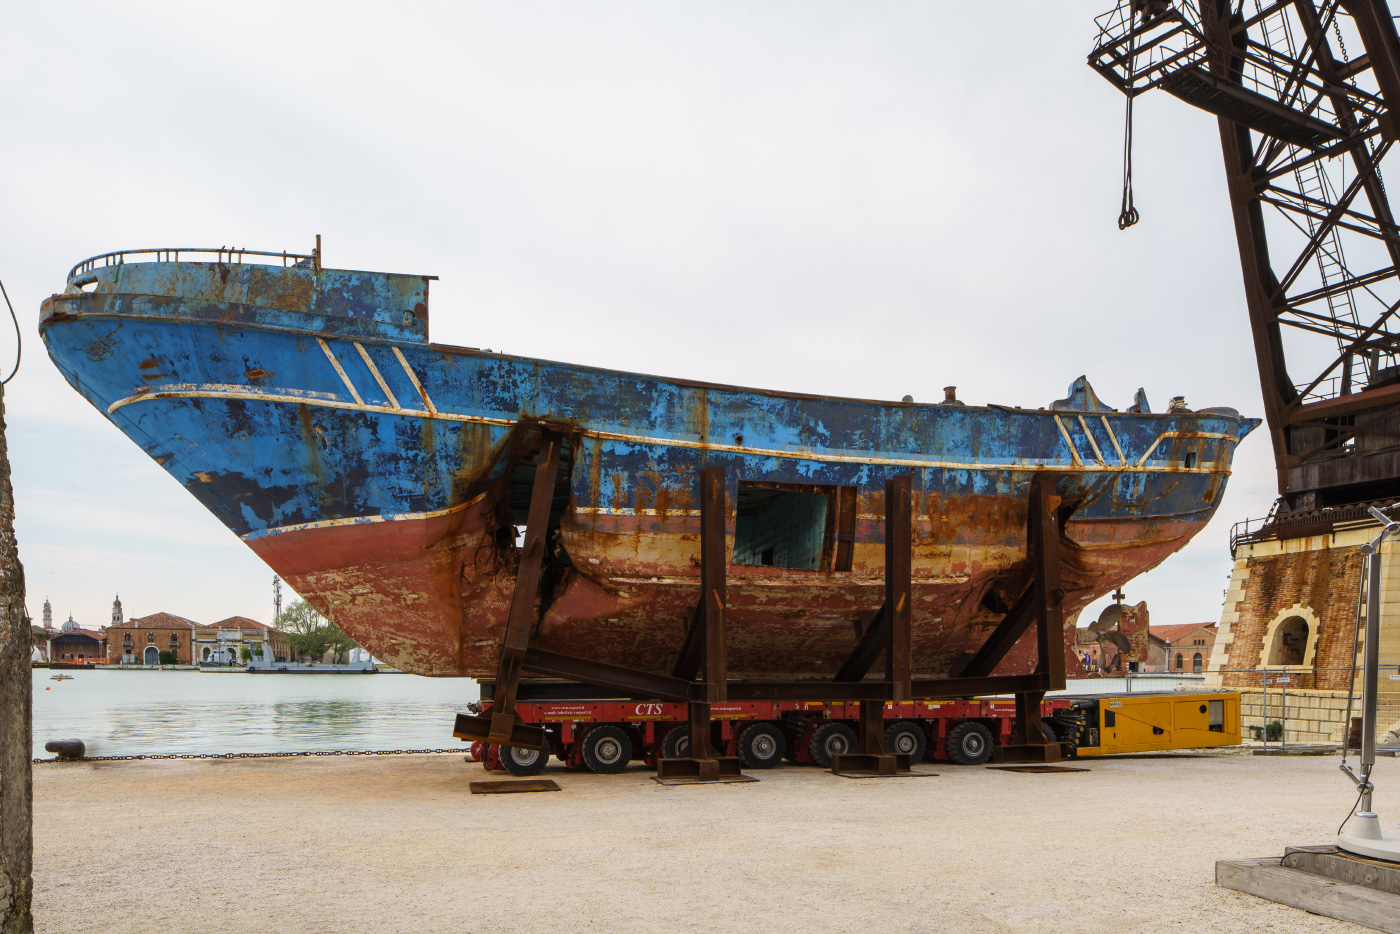 A rusted boat with a large gaping hole in the side of it, installed on concrete